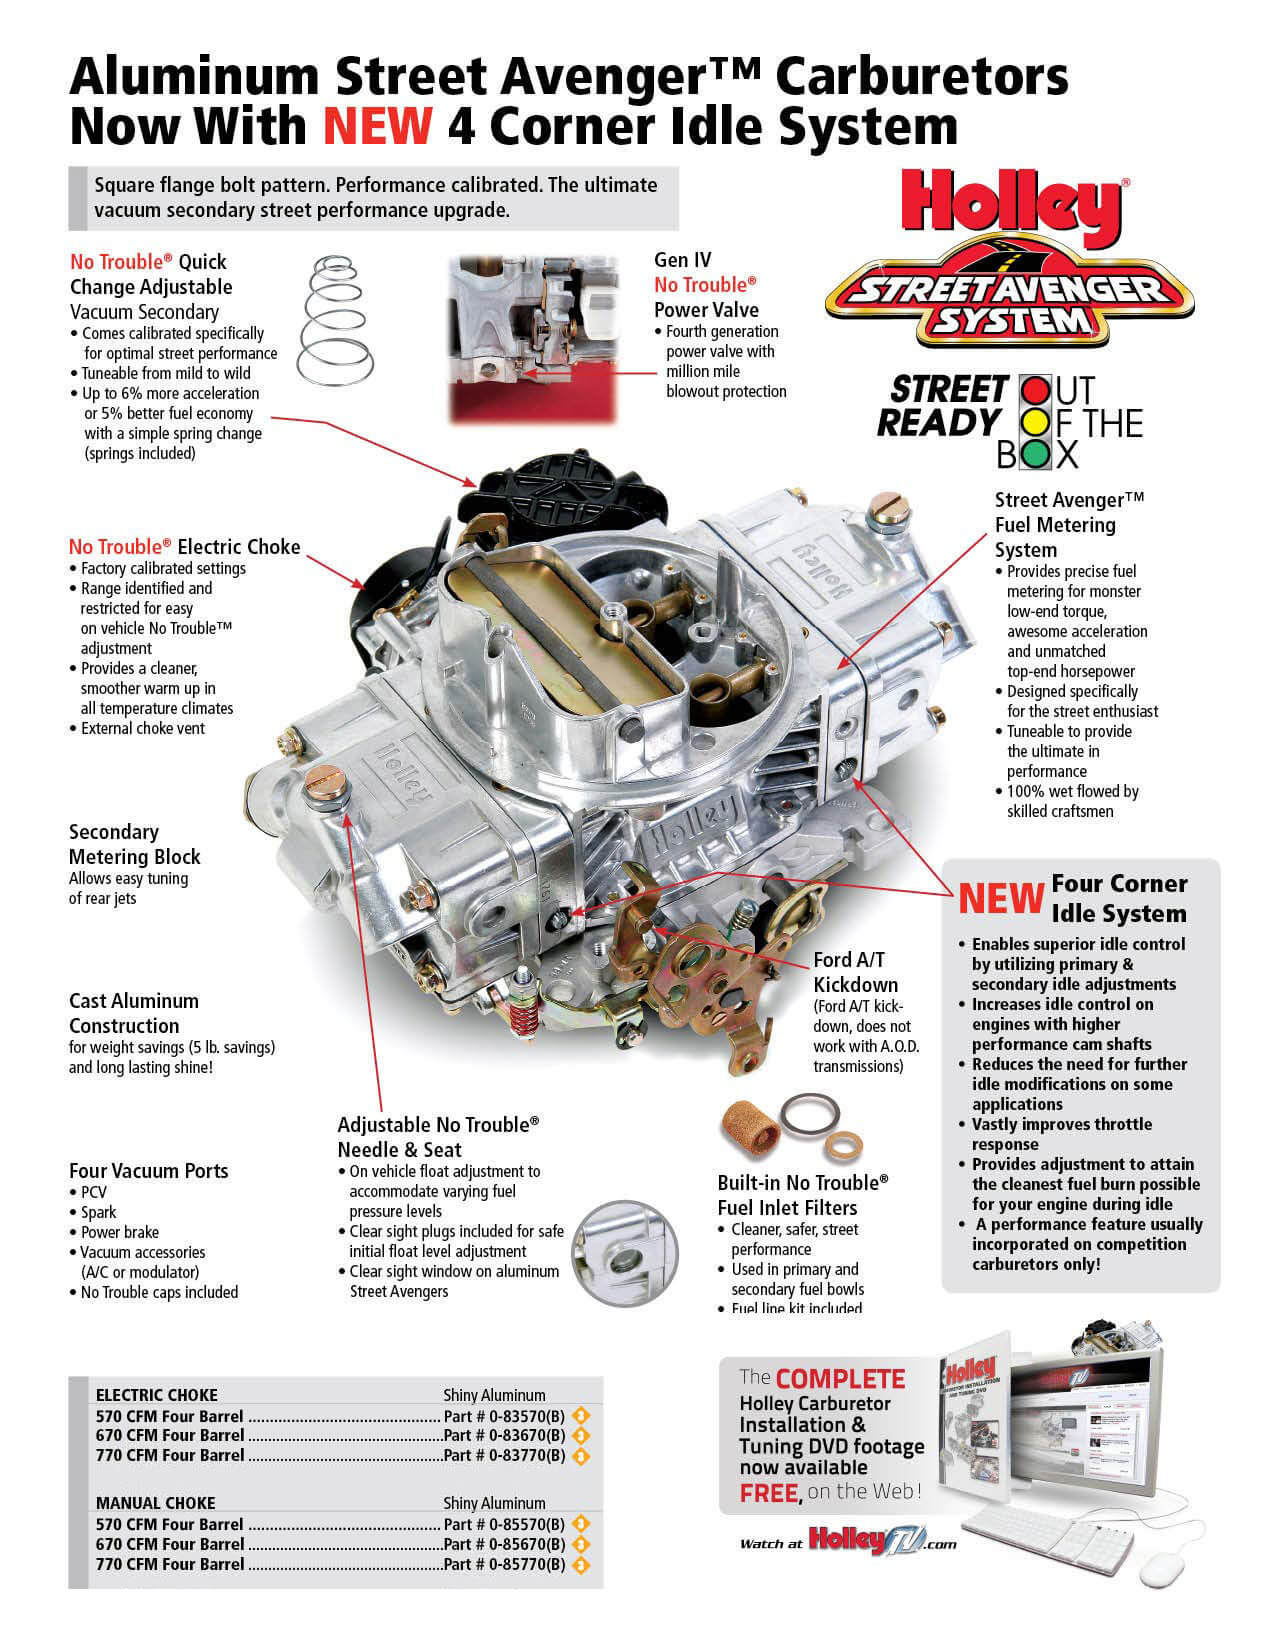 hight resolution of 1967 1991 amc v8 holley 570 cfm street avenger aluminum carburetor vacuum secondaries manual choke